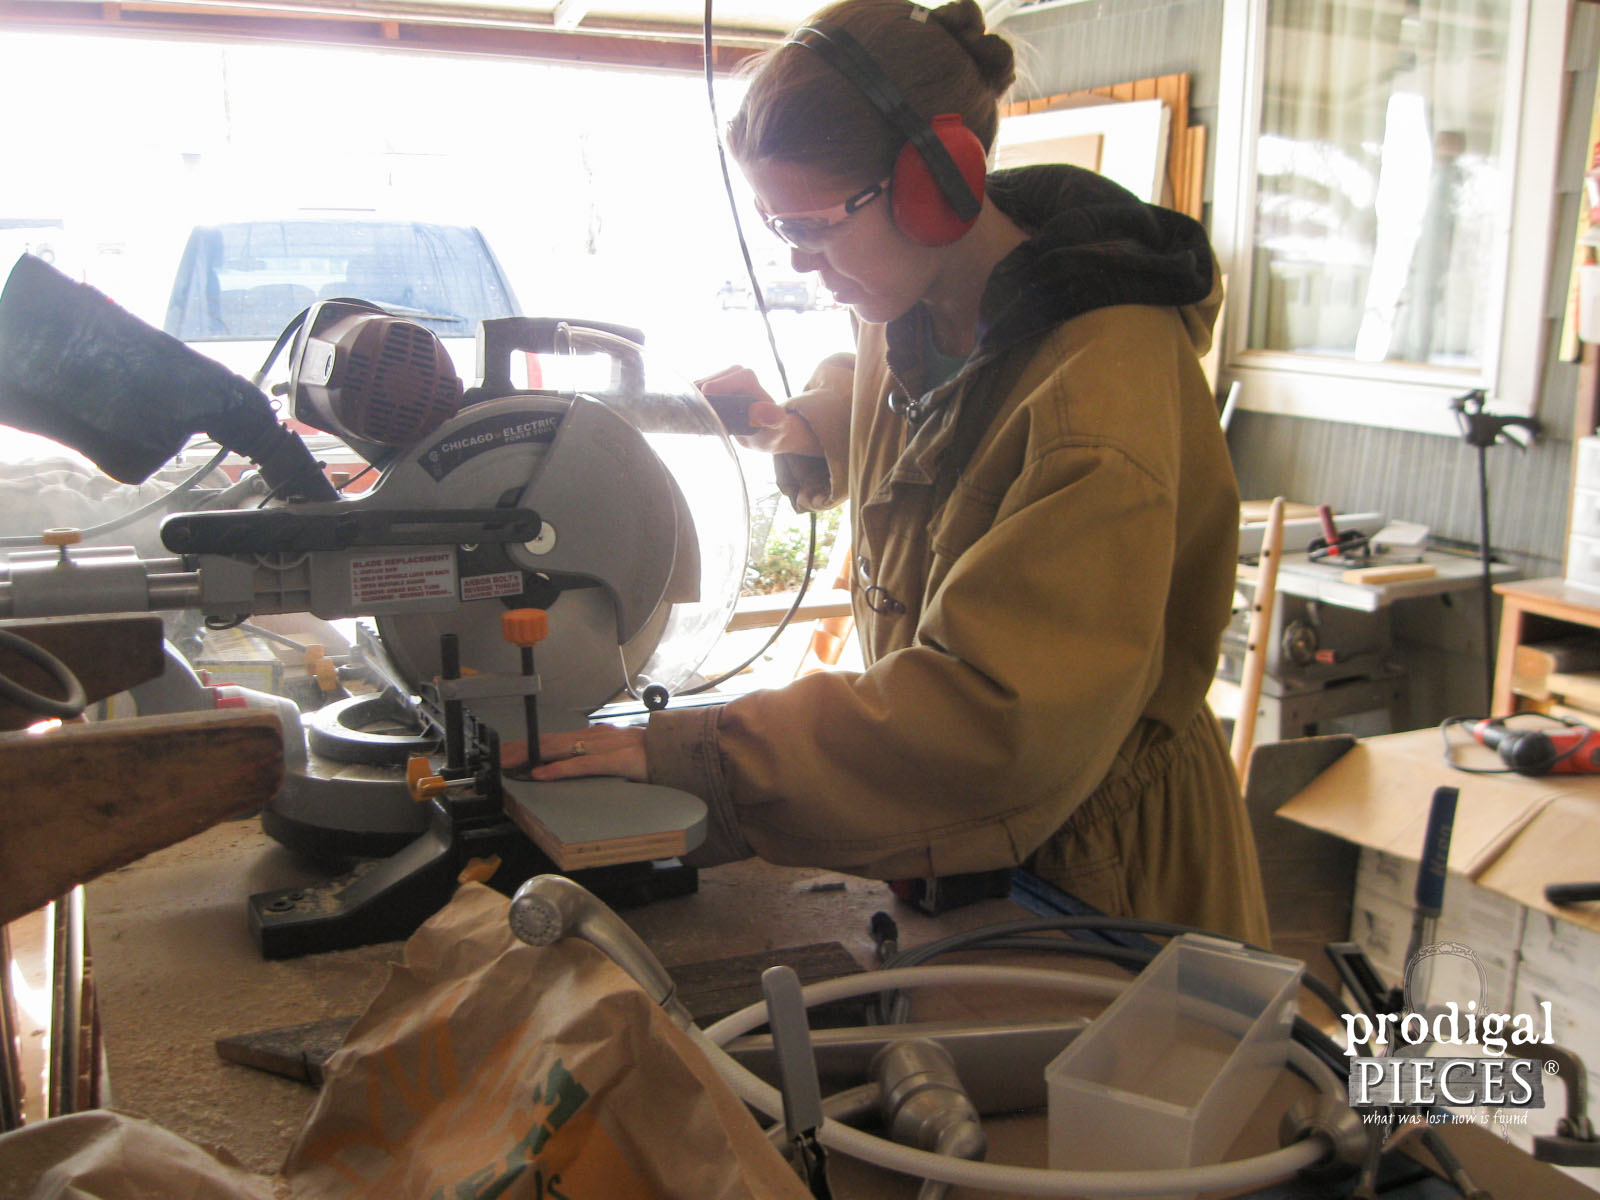 Using Miter Saw to Repurpose Kitchen Cabinets | Prodigal Pieces | www.prodigalpieces.com